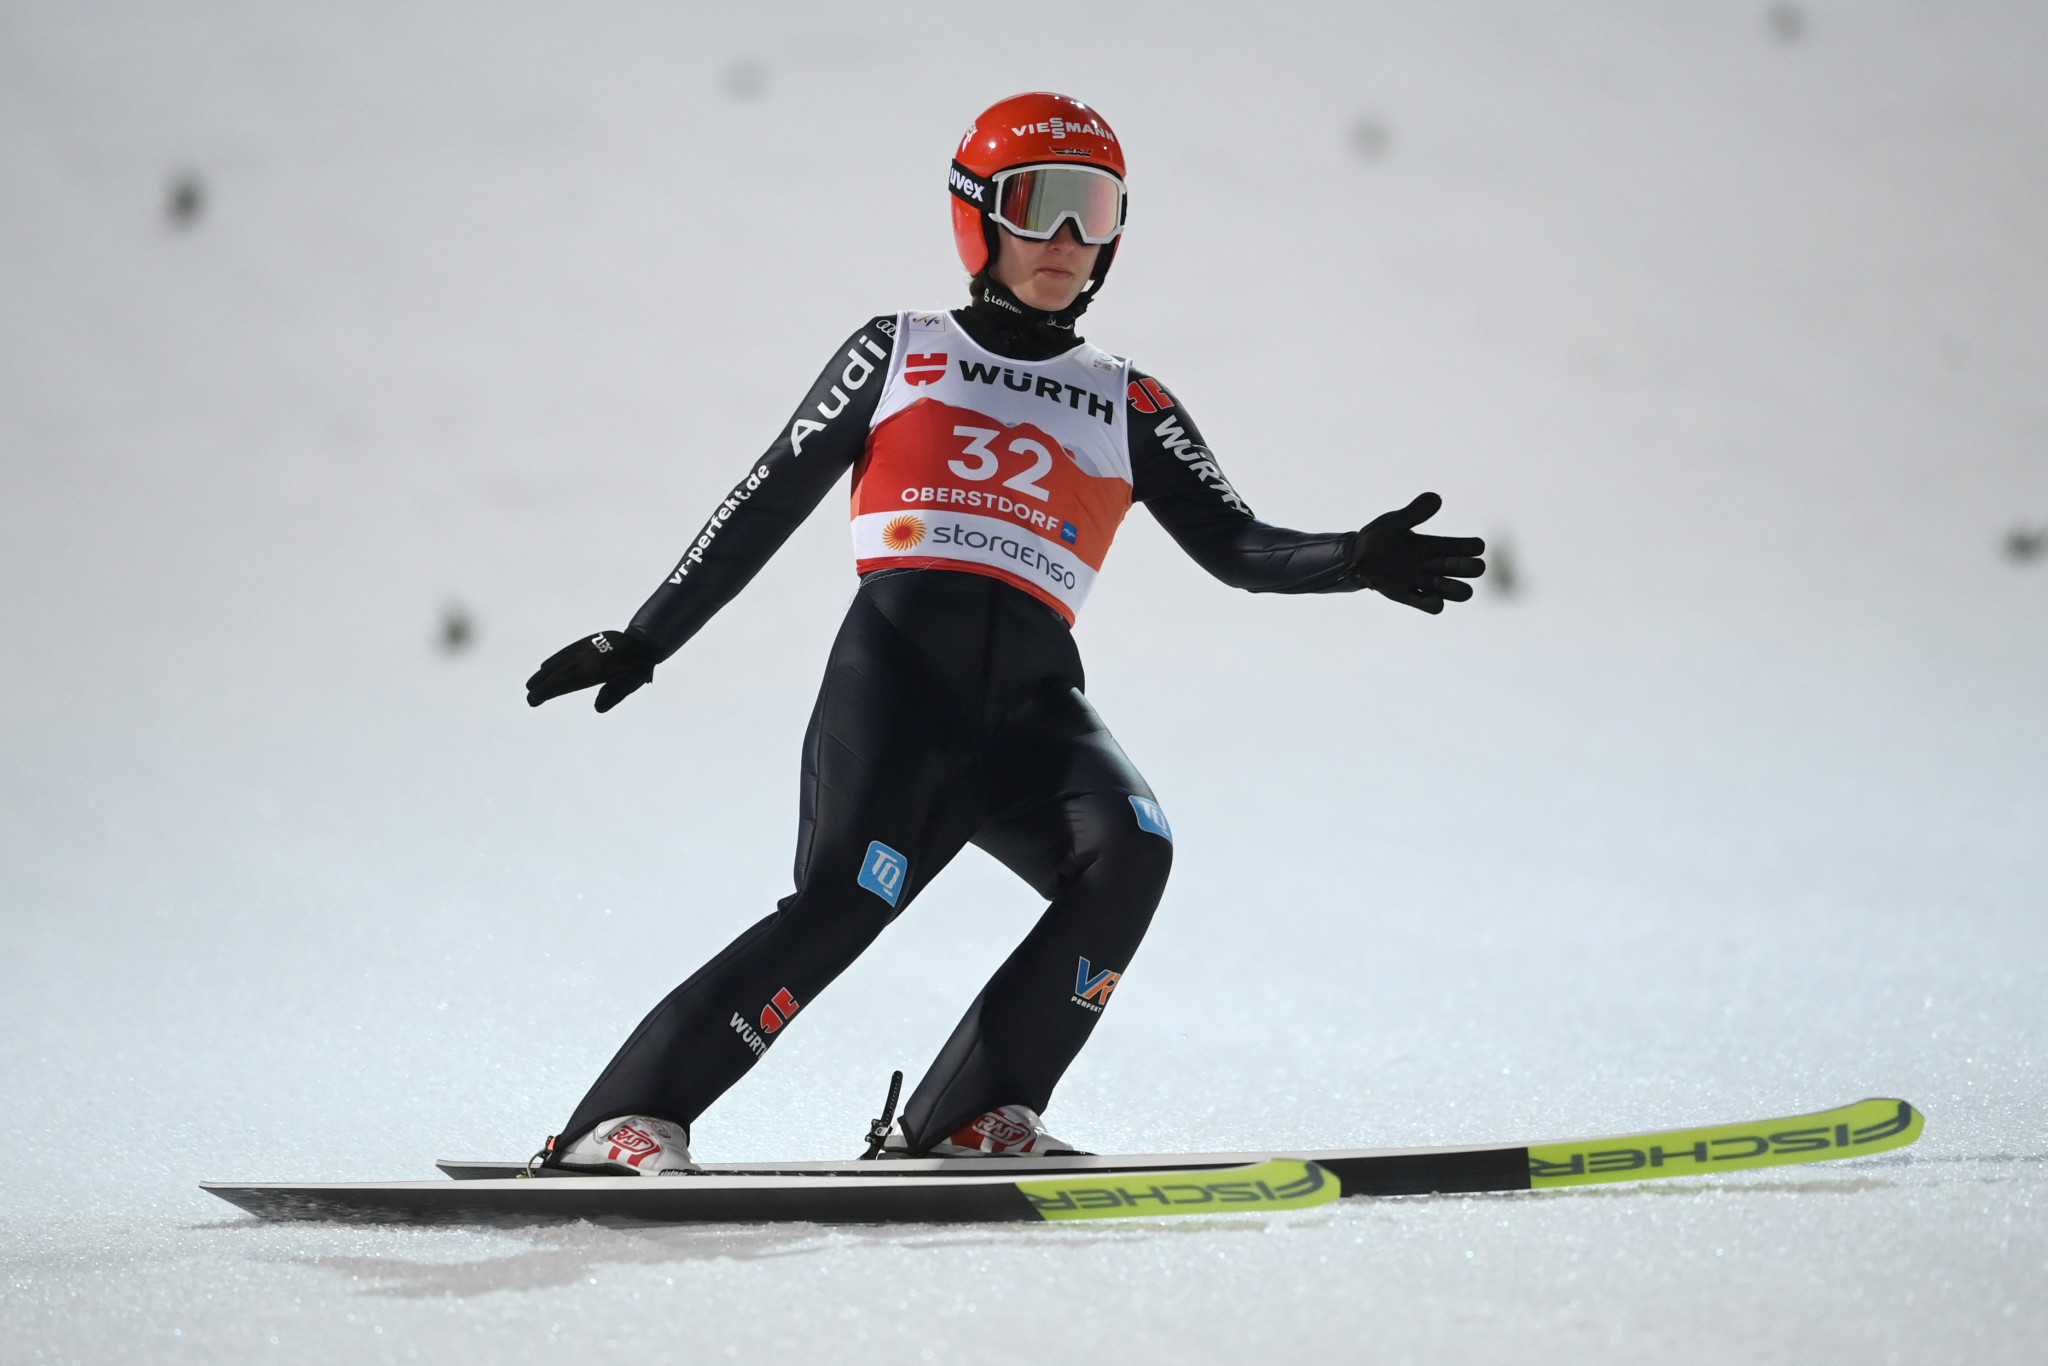 Olympic silver medallist Katharina Althaus is part of the German women's squad ©Getty Images